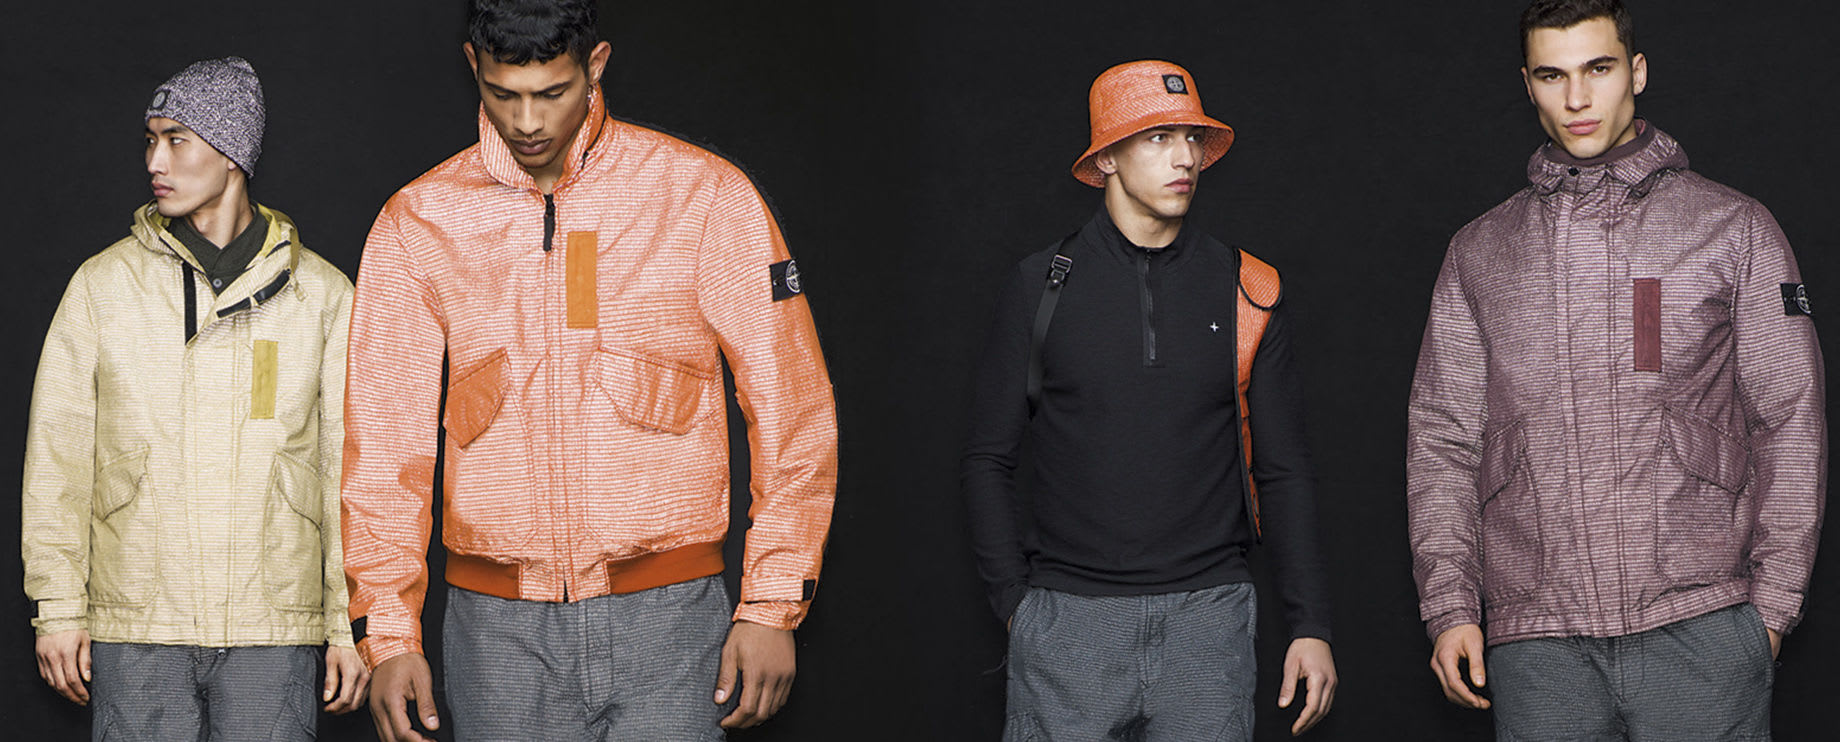 Stone Island Reflective Weave Ripstop Collection